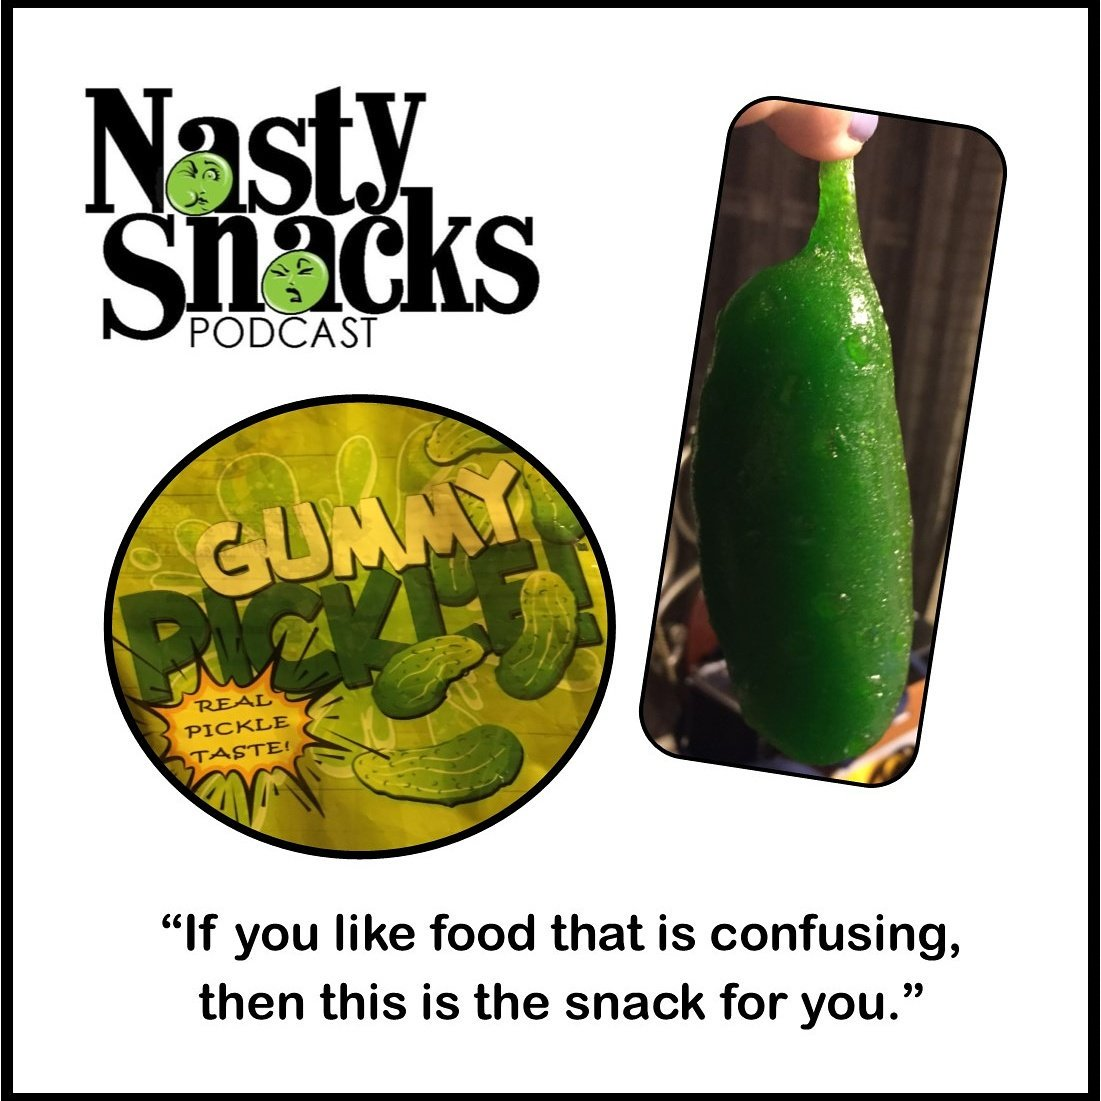 Nasty Snacks Podcast on Twitter: